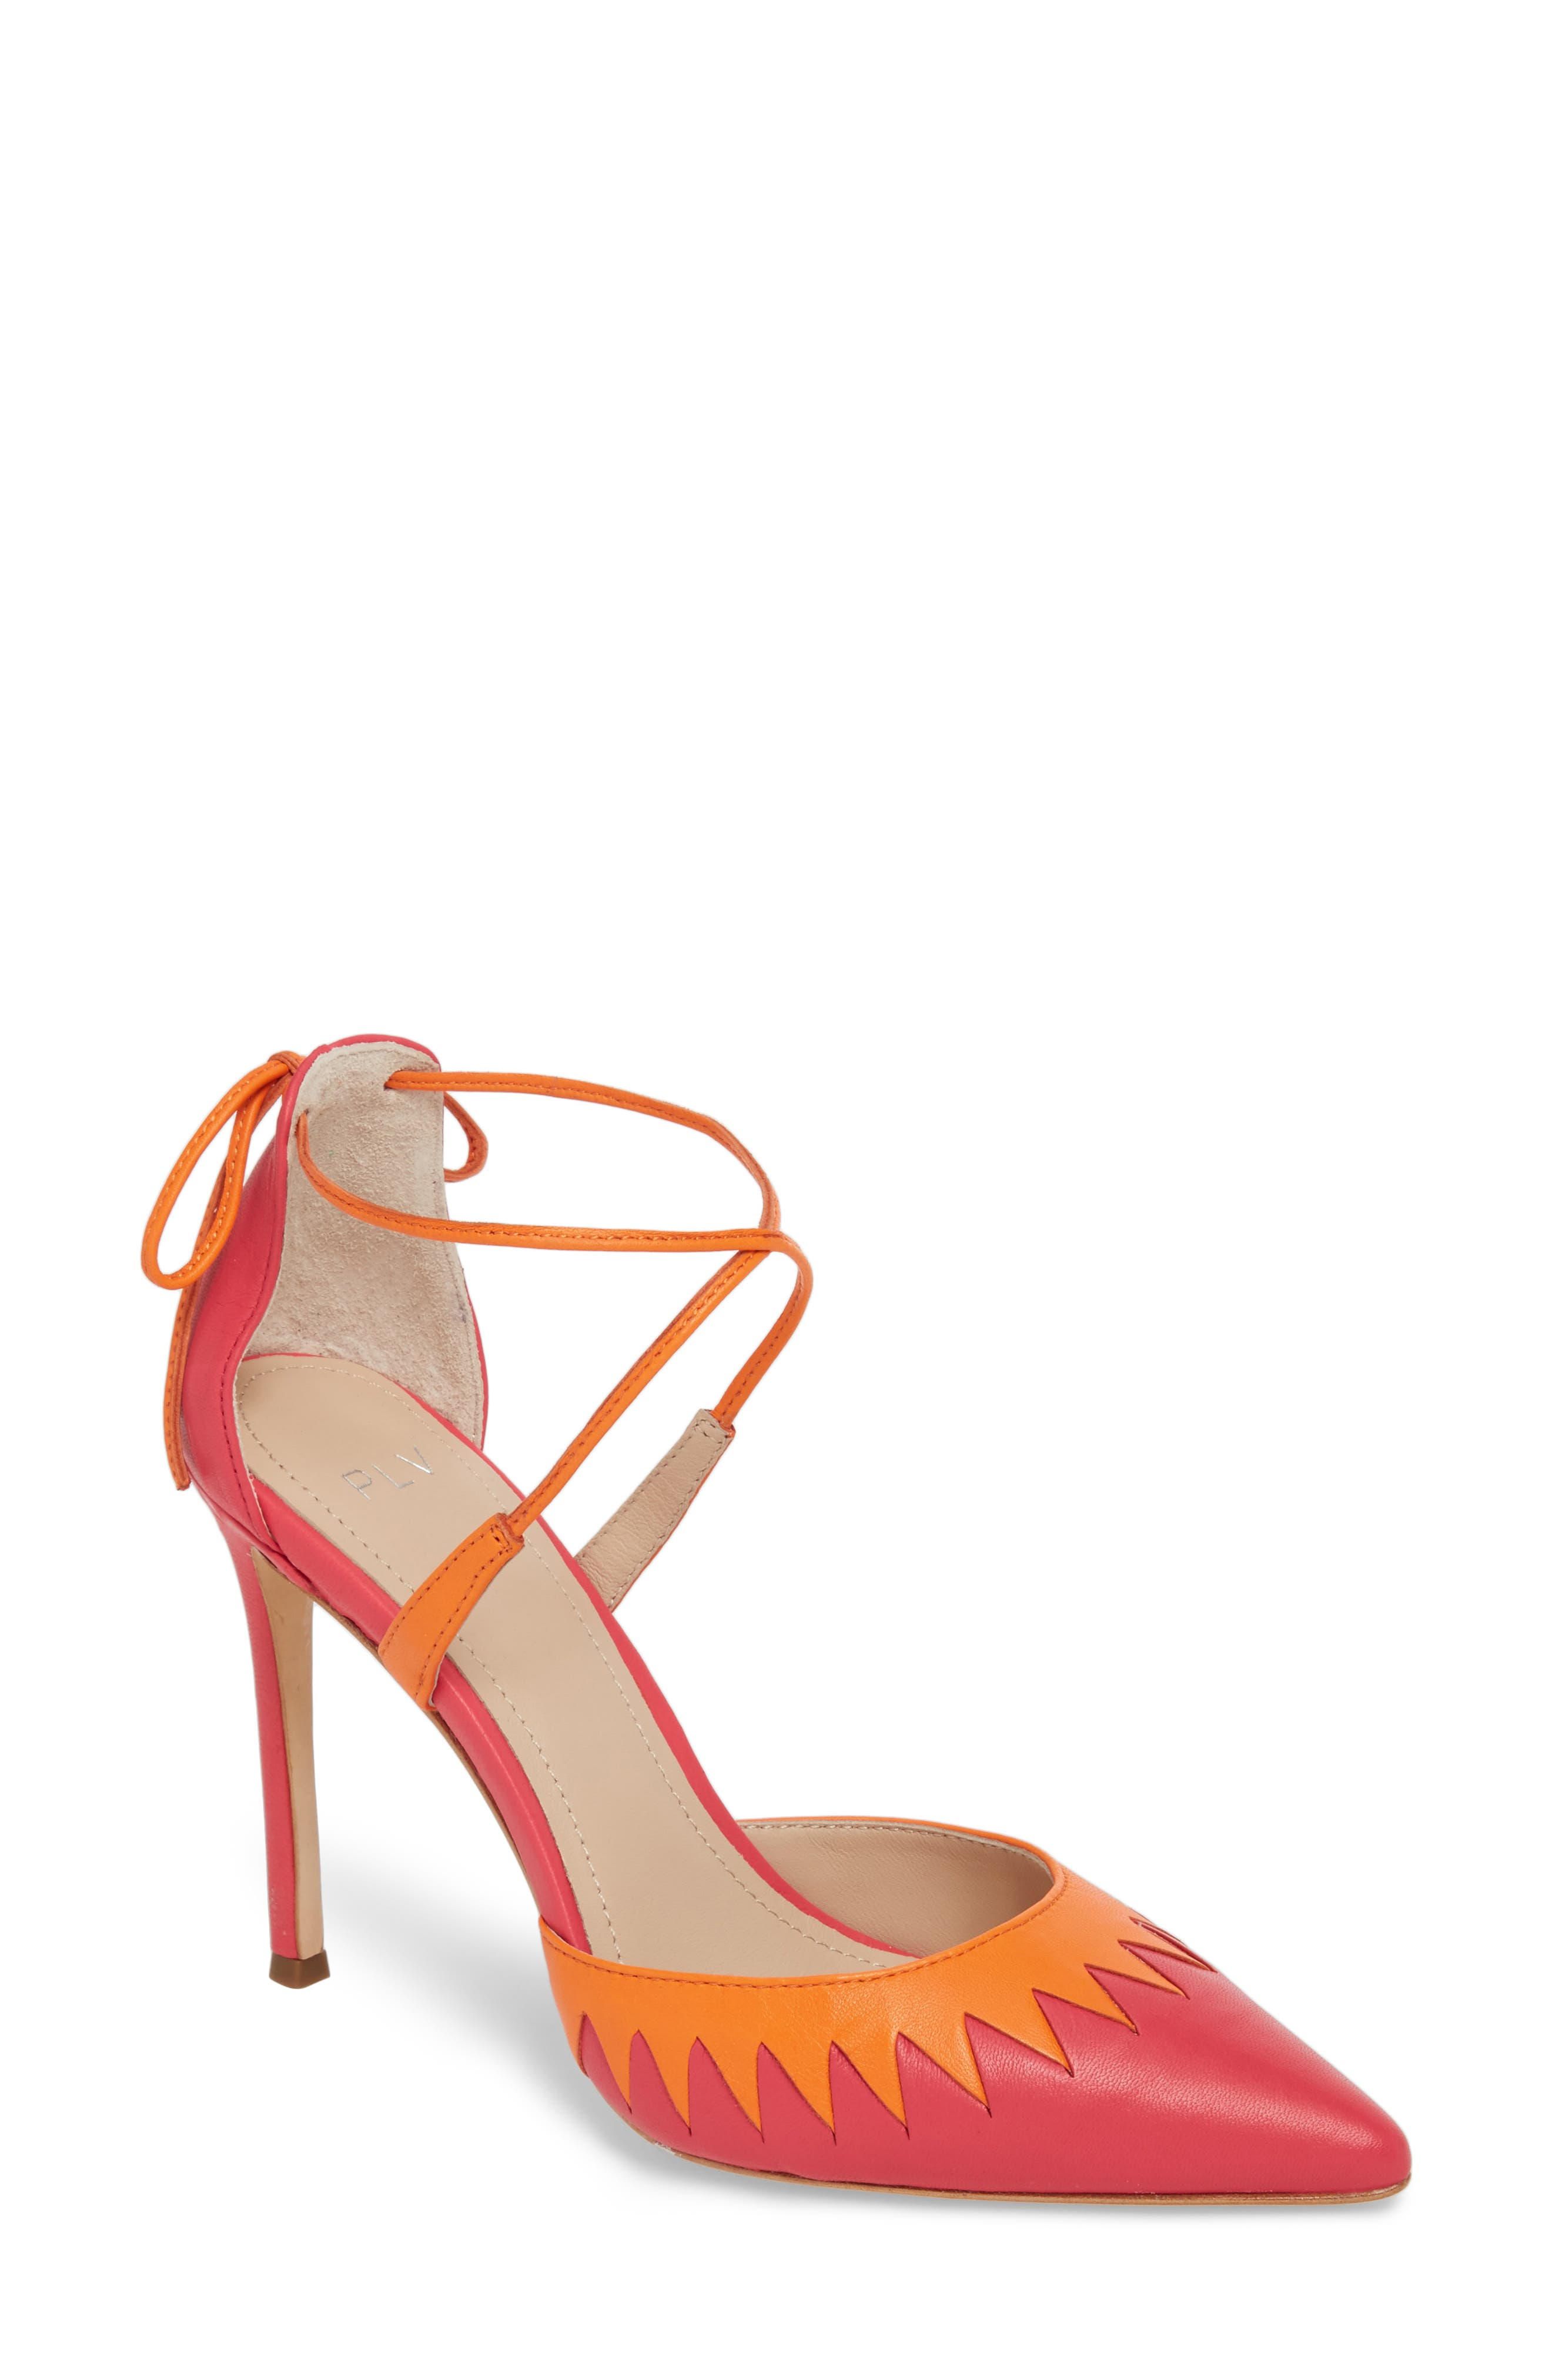 Cenya Pump,                             Main thumbnail 1, color,                             Azalea/ Orange Blossom Leather